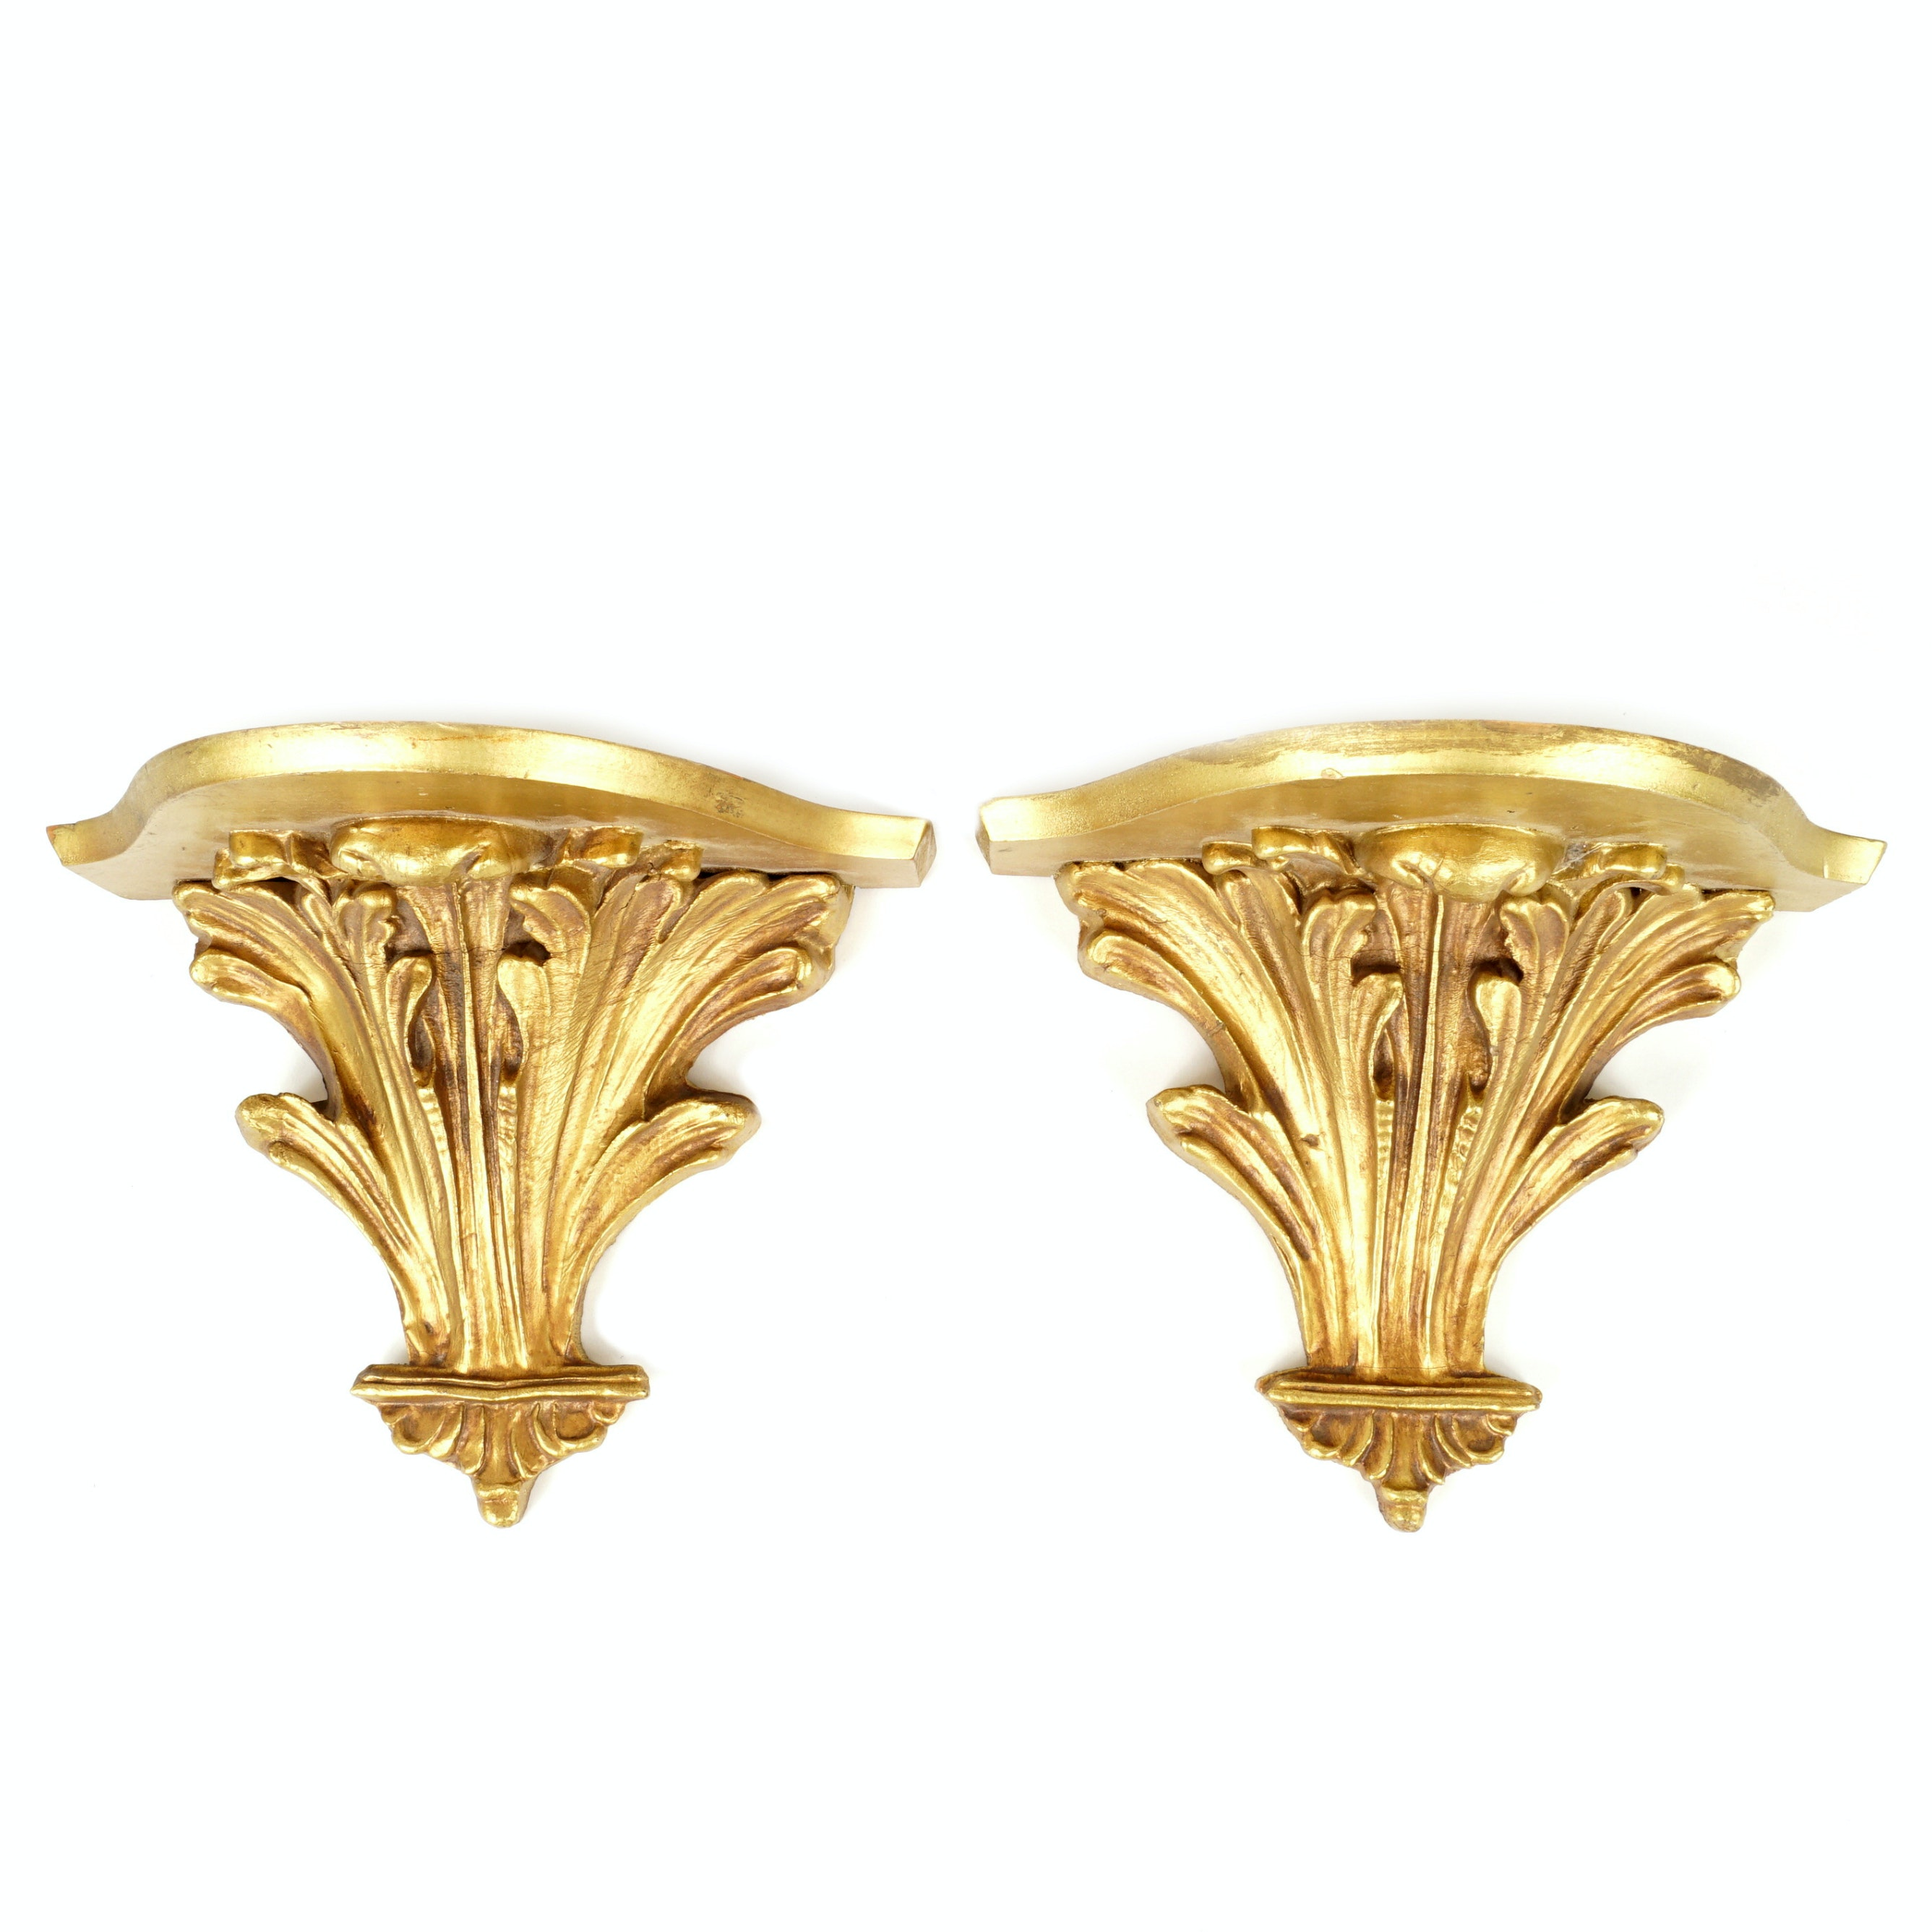 Pair of Neoclassical Style Giltwood Wall Shelves